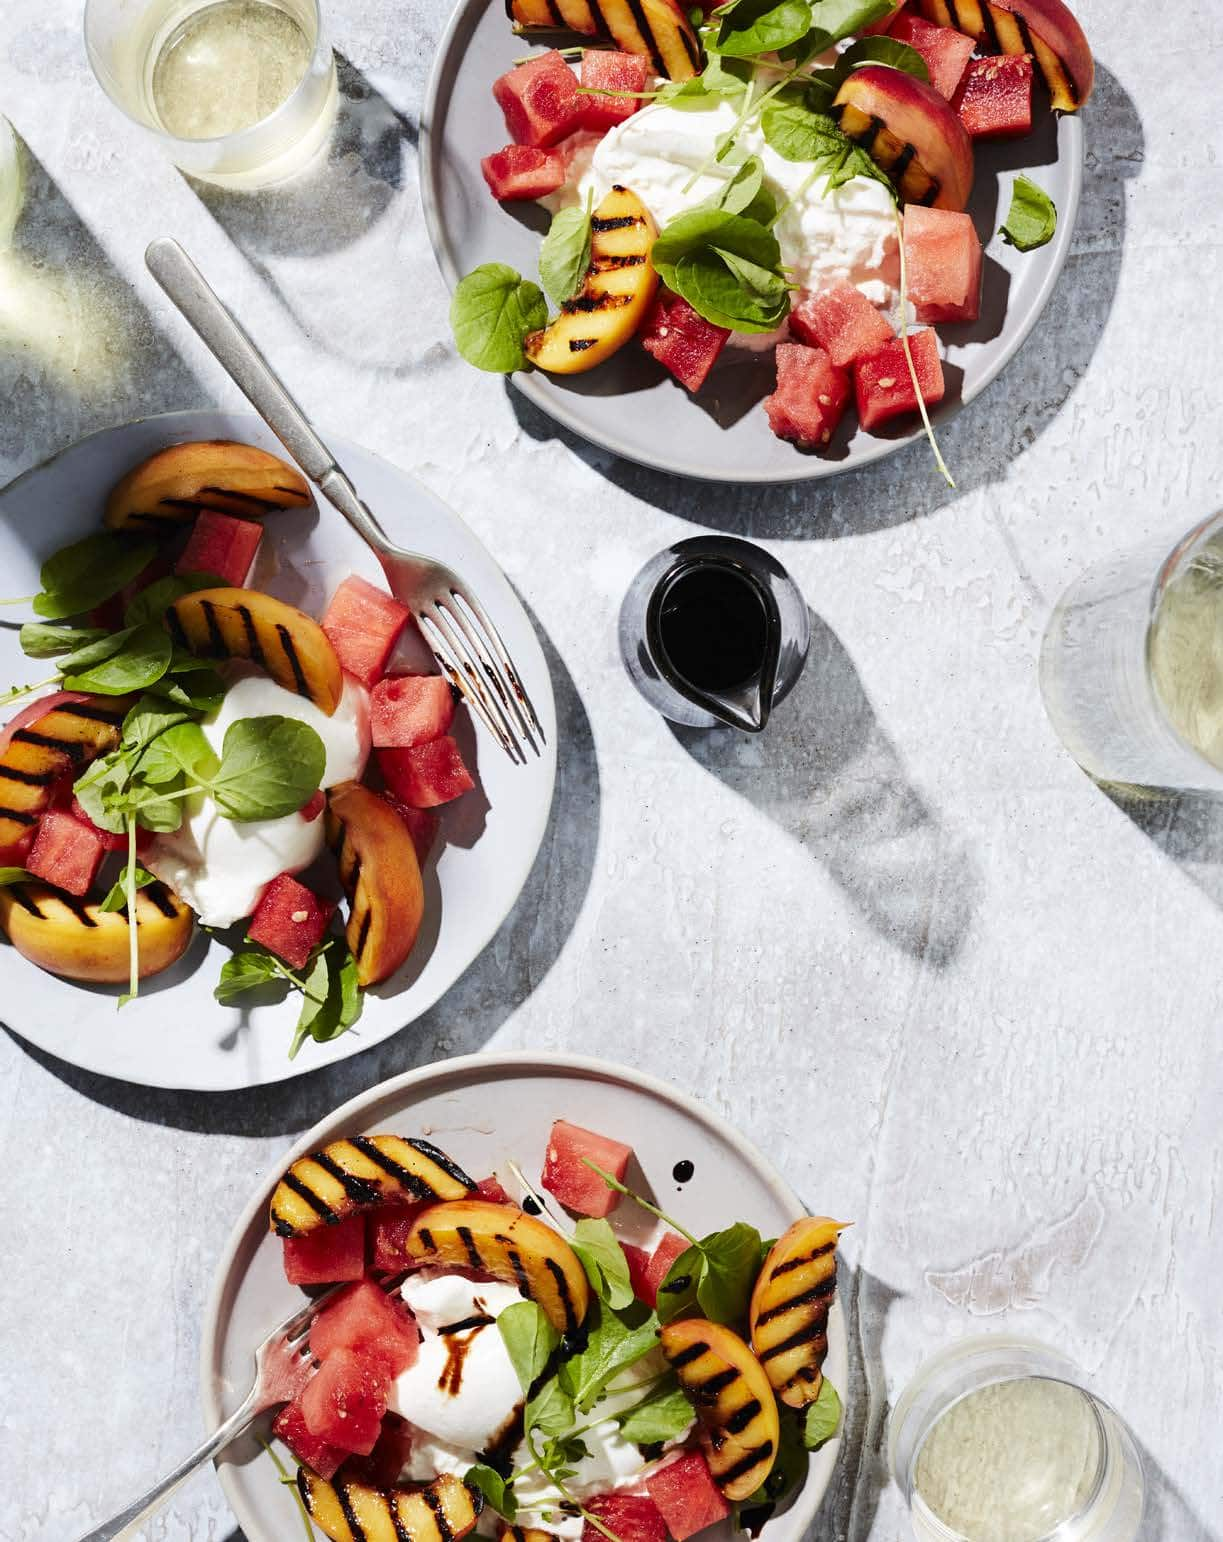 Although burrata—a fresh cheese made with mozzarella and cream—is undeniably the star of this light summer salad, the juicy grilled peaches and refreshing watermelon are pretty hard to resist.